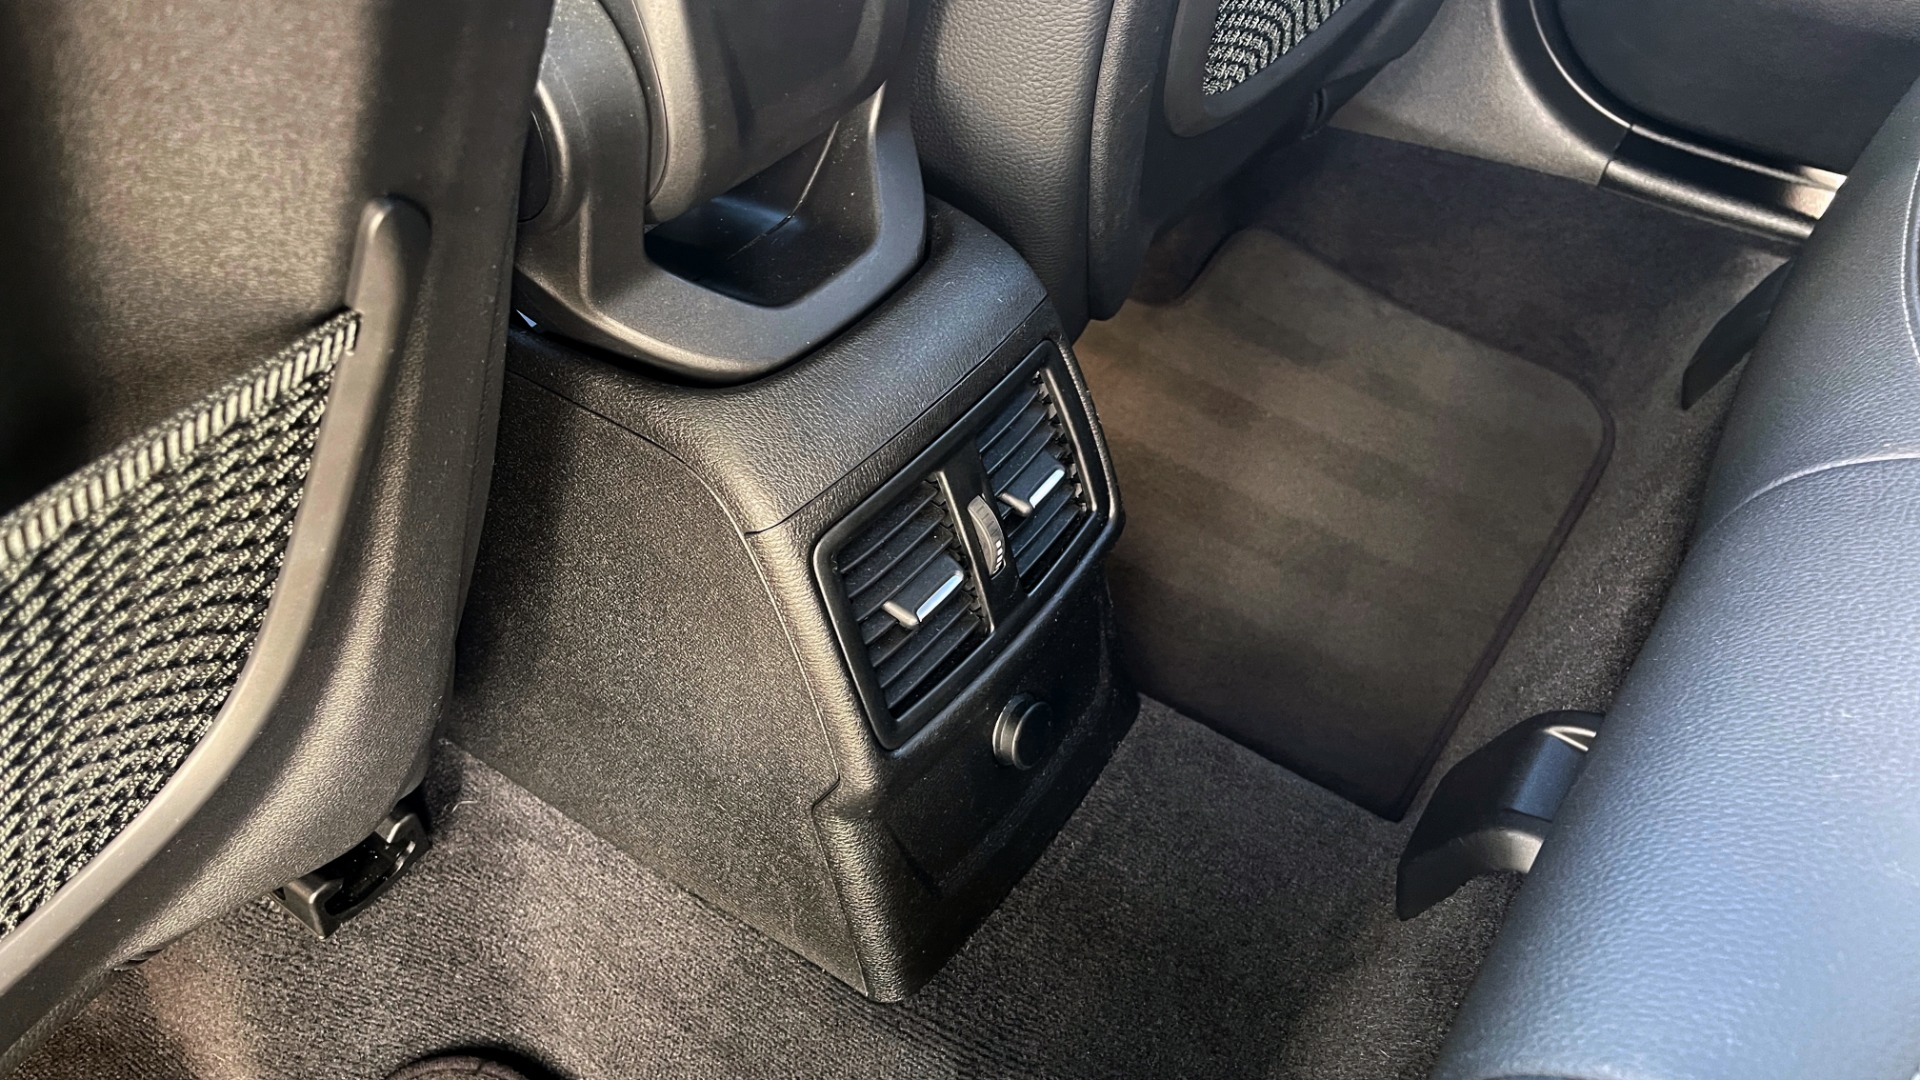 Used 2018 BMW X1 XDRIVE28I / CONV PKG / PANO-ROOF / PARK ASST / REARVIEW for sale $31,995 at Formula Imports in Charlotte NC 28227 47